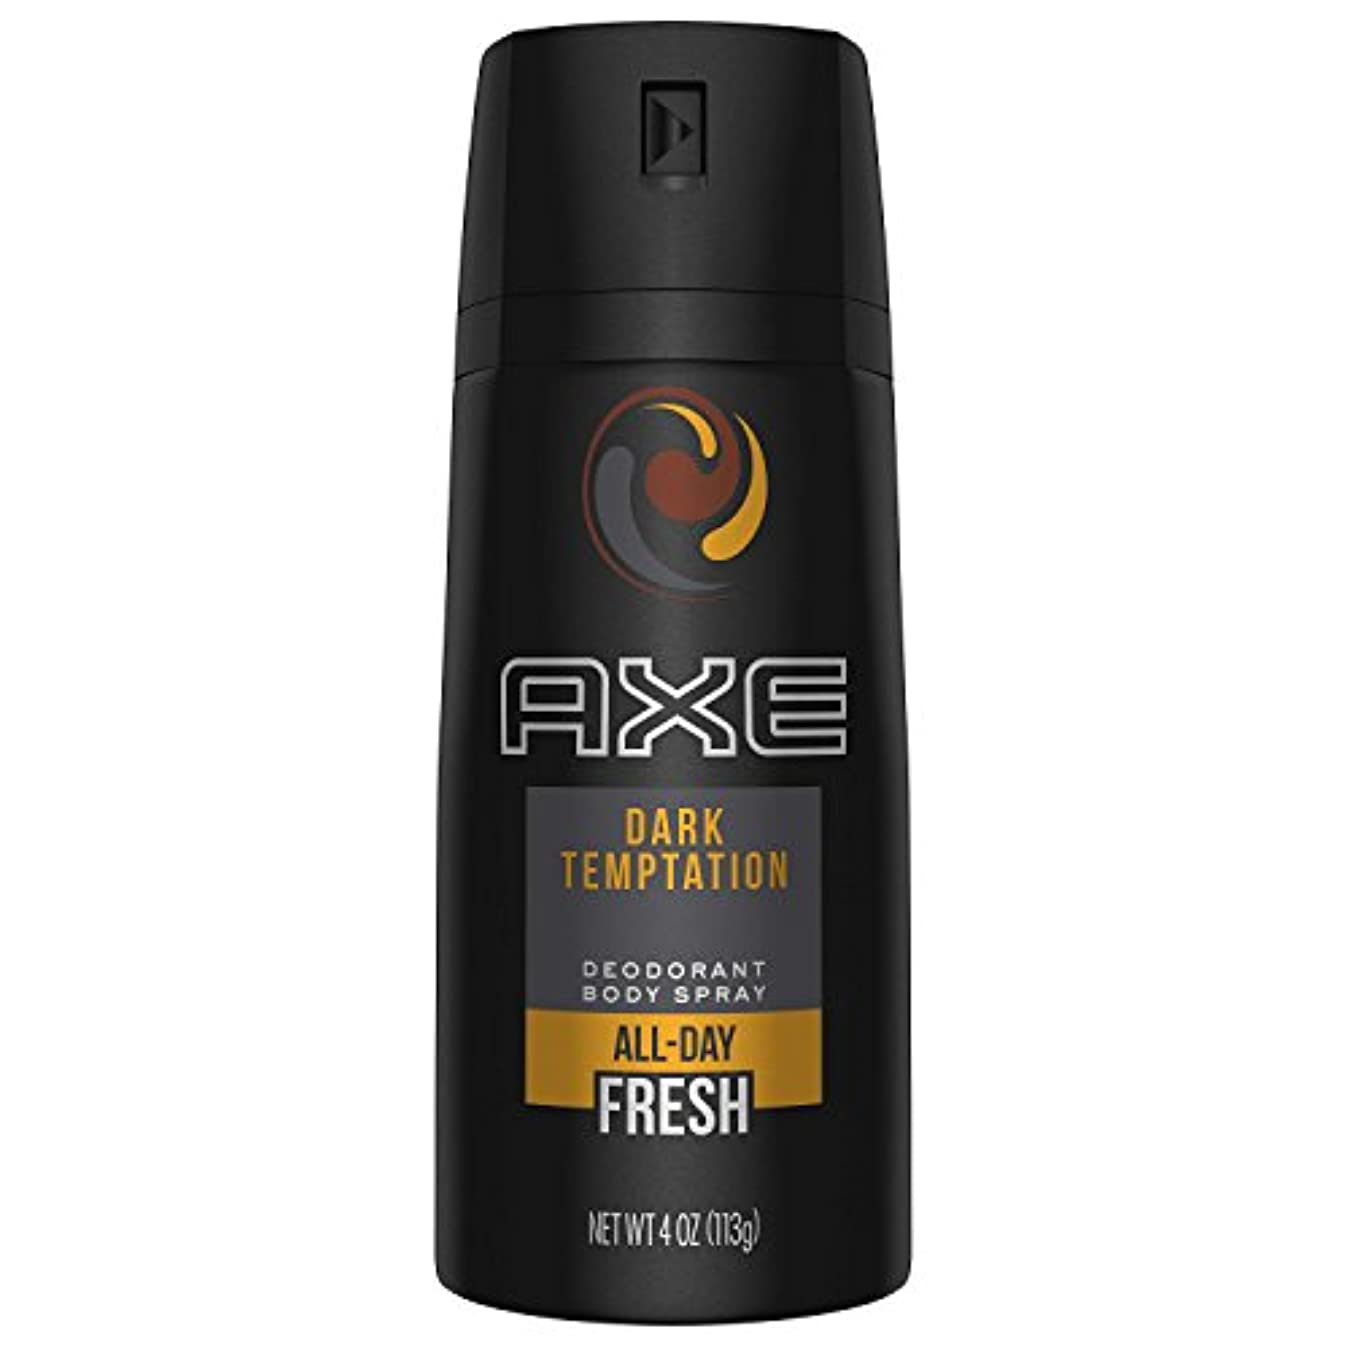 メディカルモス借りているAXE Dark Temptation Deodorant Body Spray 120 ml Deodorant Spray Men (並行輸入品)